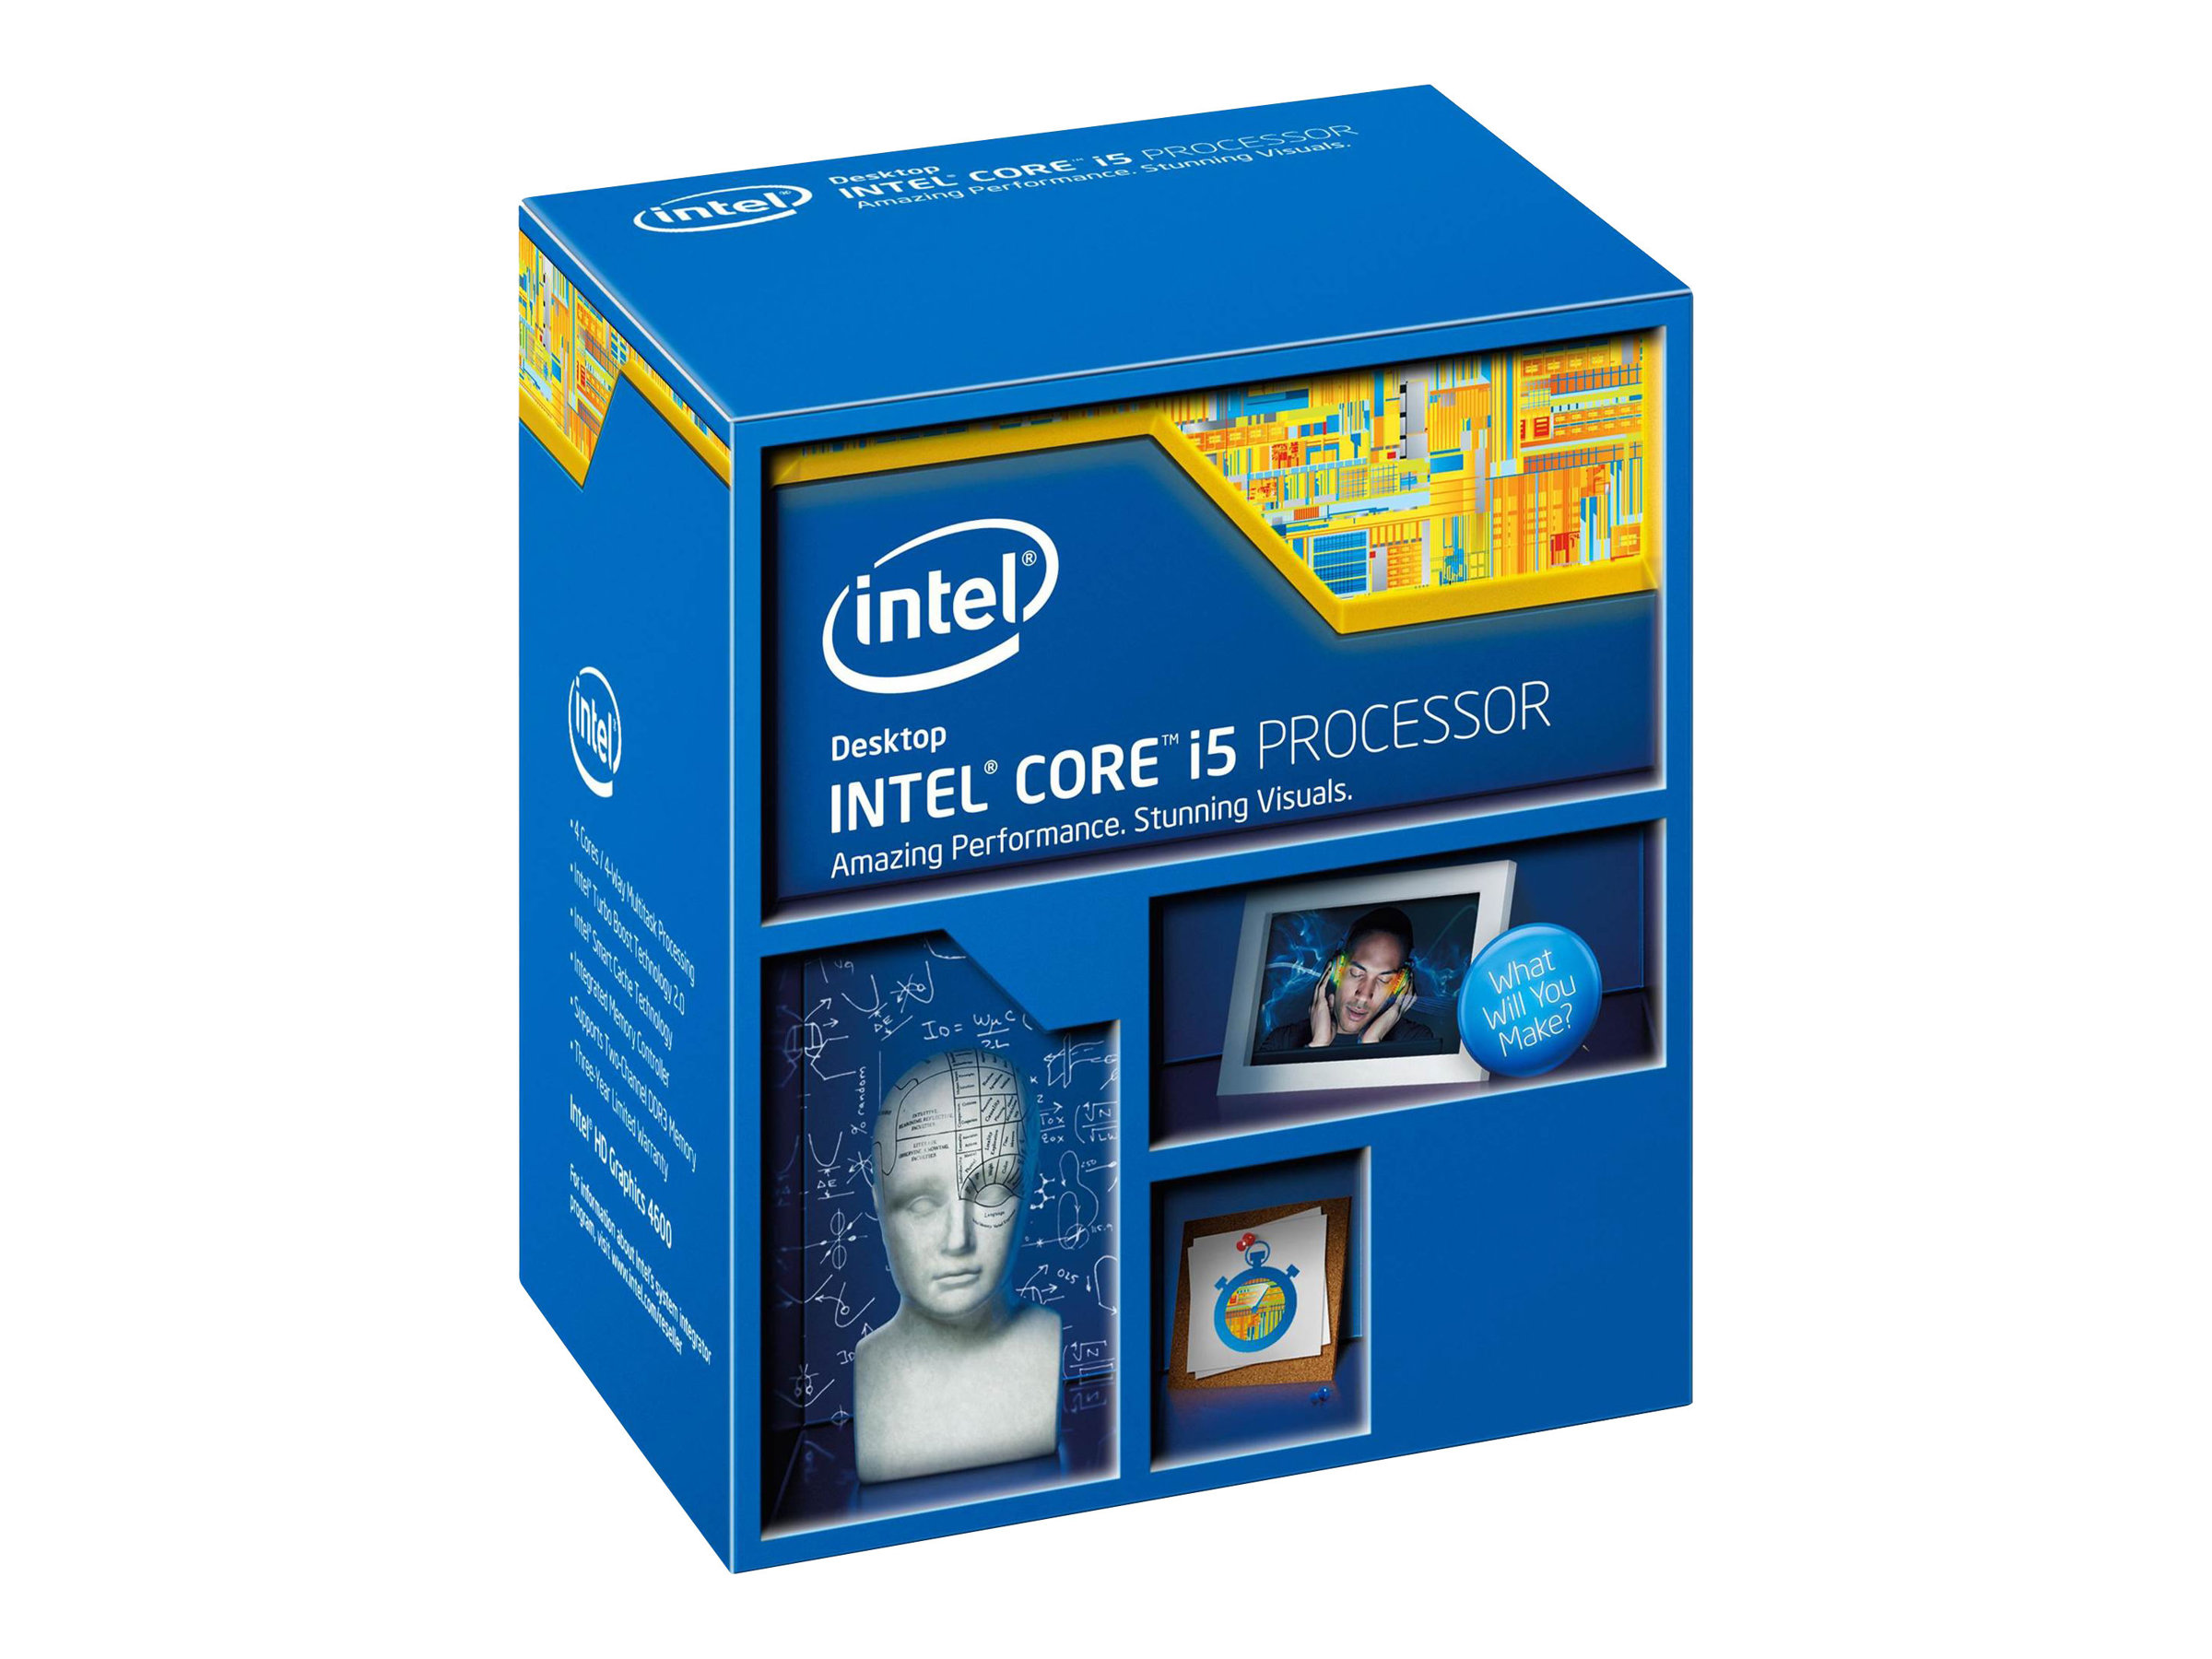 Intel Core i5 4460 - 3.2 GHz - 4 Kerne - 4 Threads - 6 MB Cache-Speicher - LGA1150 Socket